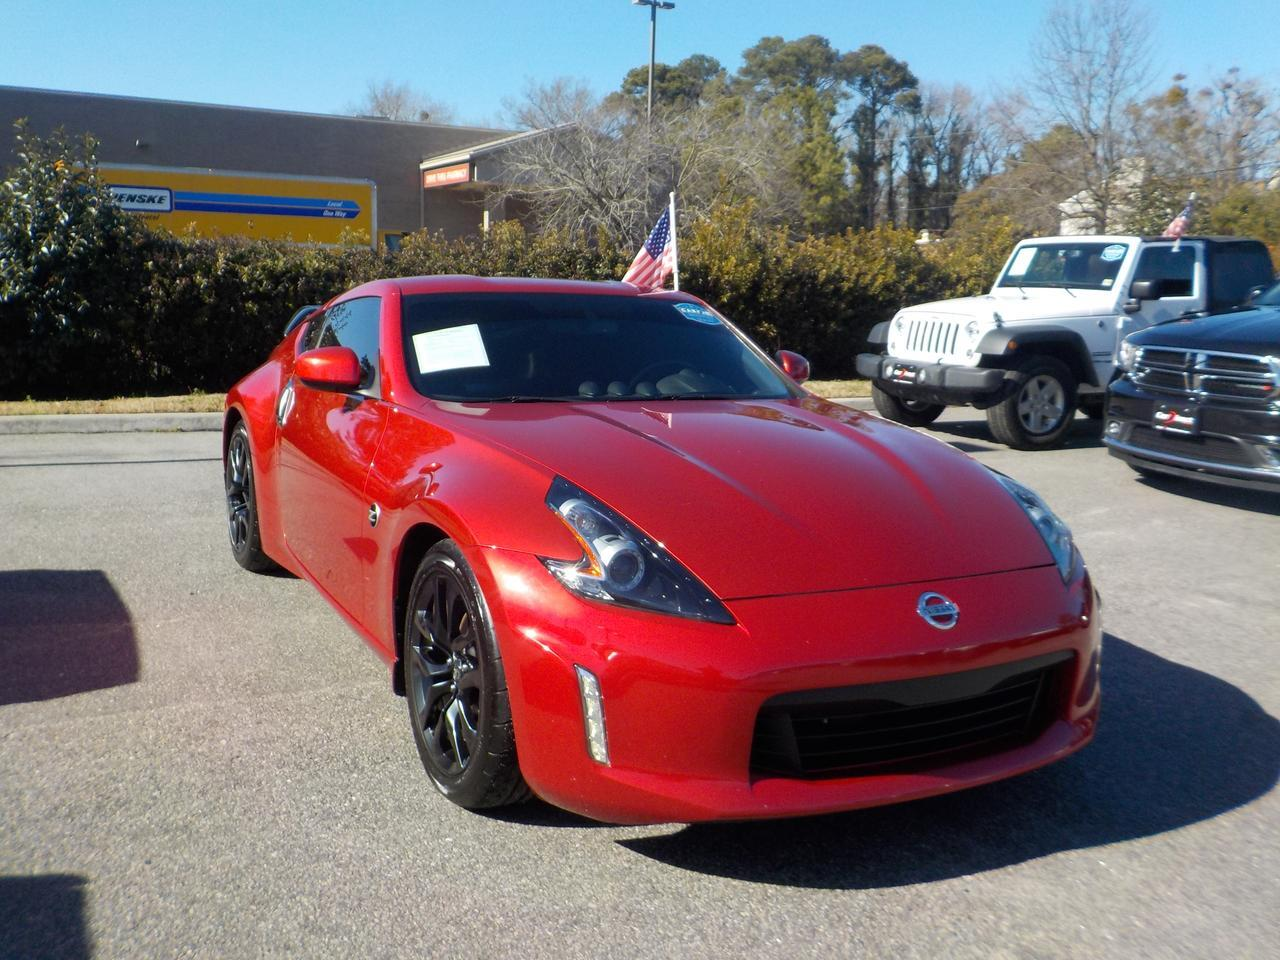 2019 NISSAN 370Z MANUAL 6 SPEED RWD, BLUETOOTH WIRELESS, VERY CLEAN, WELL MAINTAINED, REAR SPOILER, BACKUP CAMERA! Virginia Beach VA